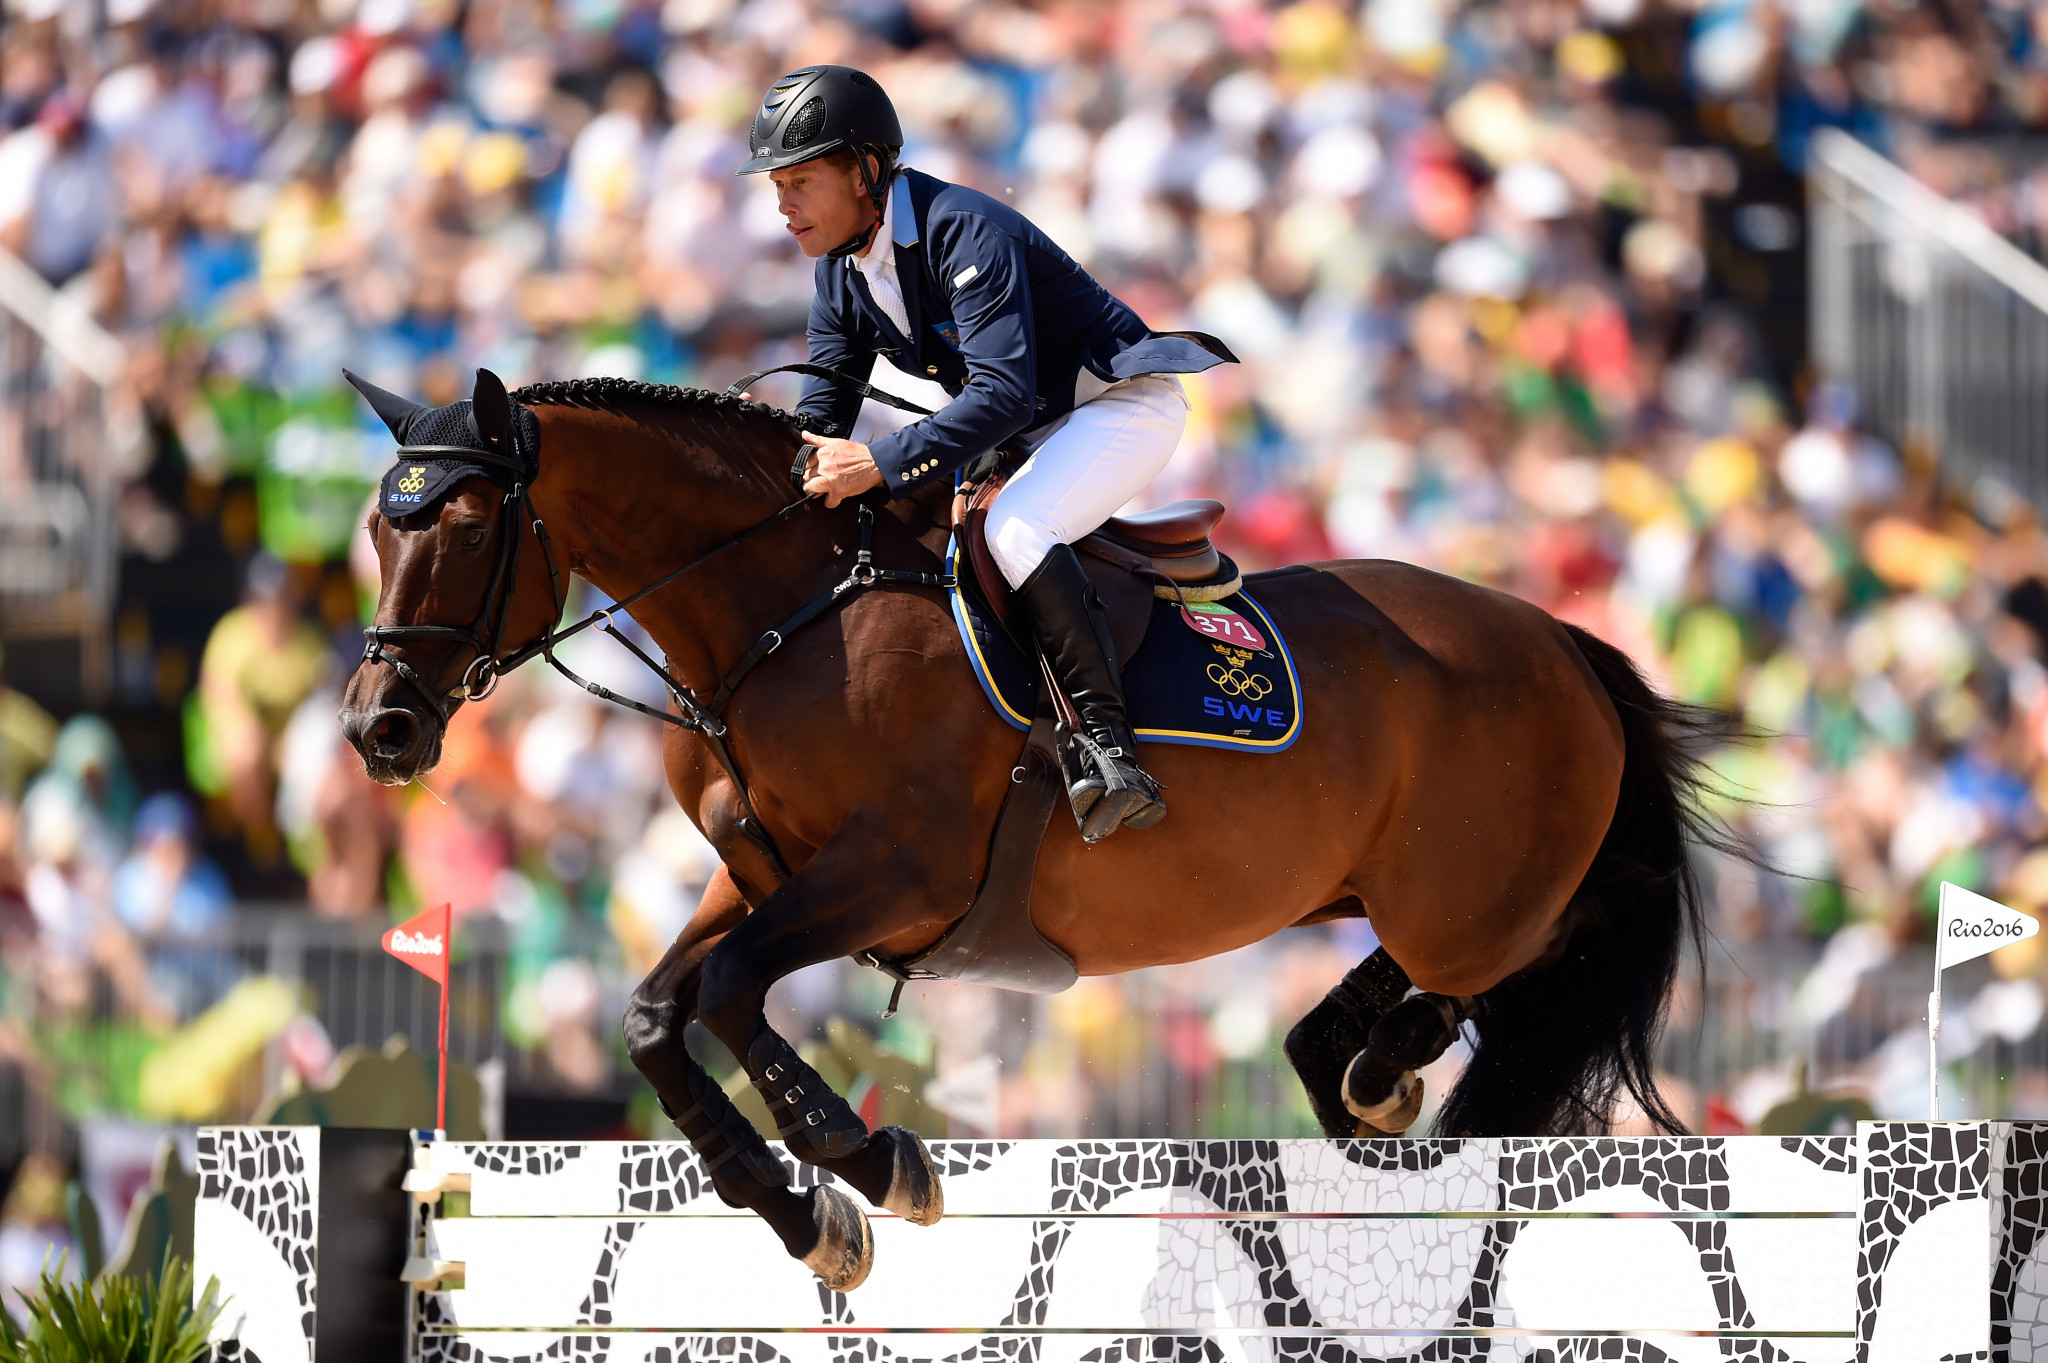 Bengtsson earns opening win for Sweden in jump-off at Jumping Nations Cup in St Gallen